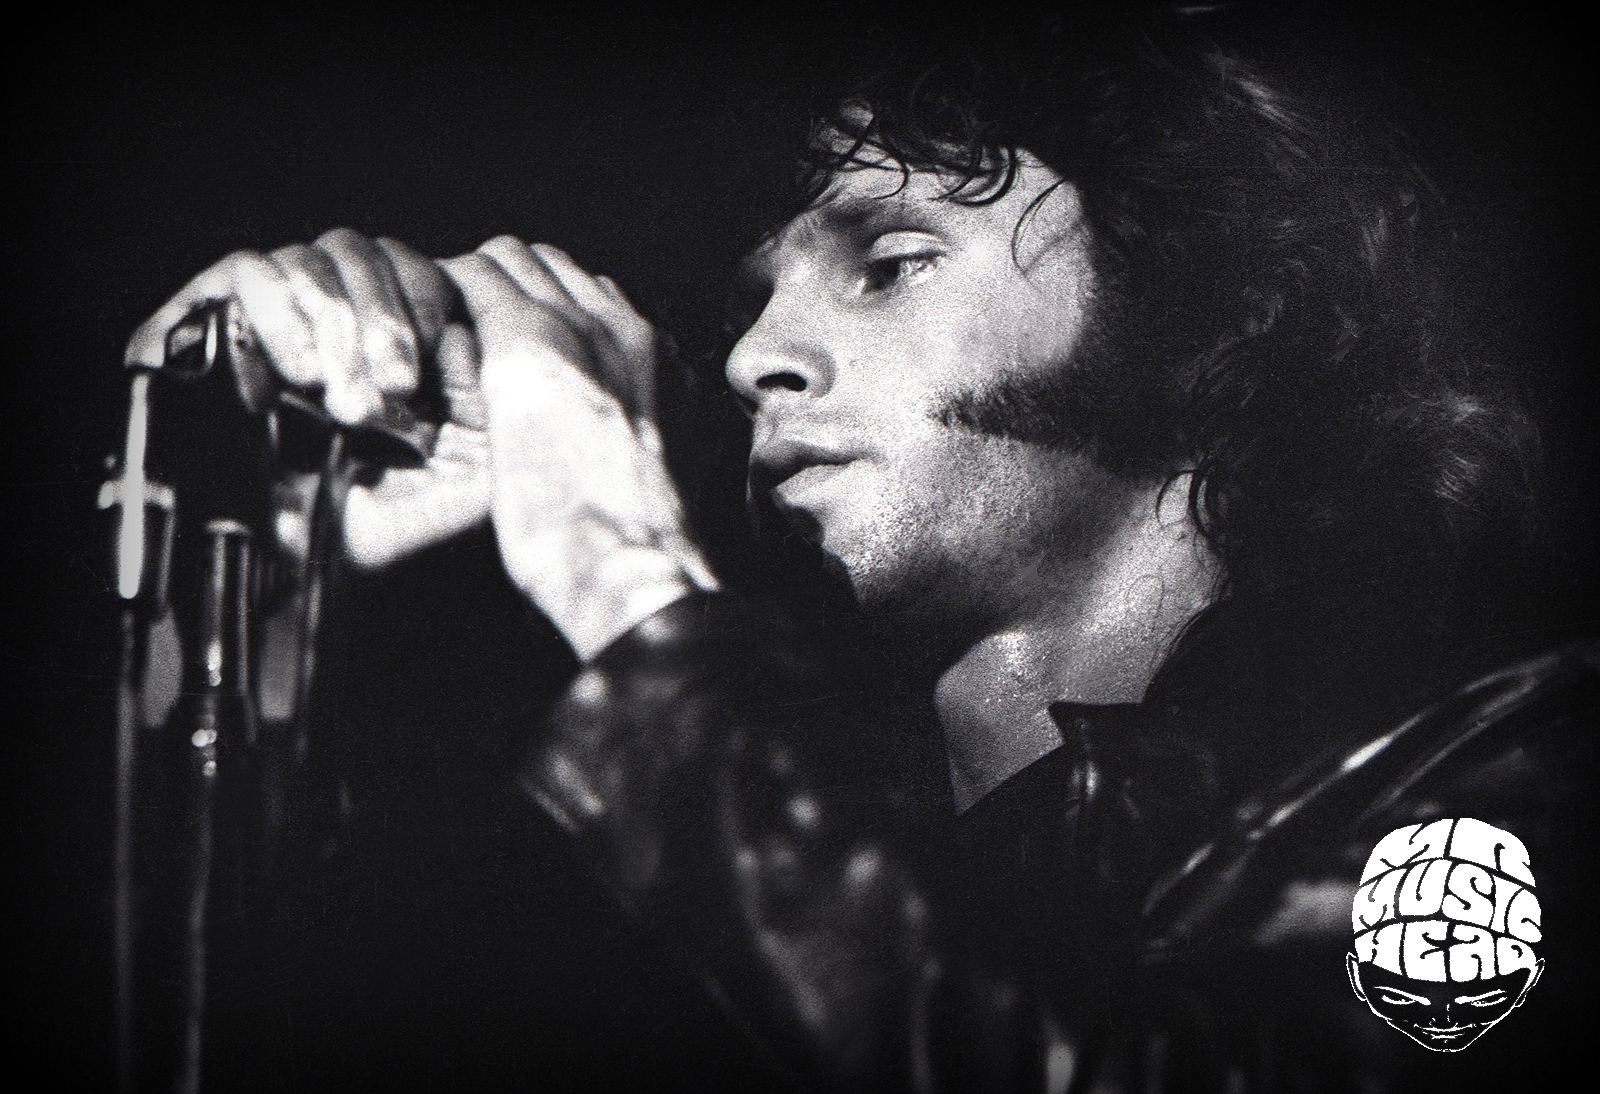 peter simon_Jim Morrison.jpg